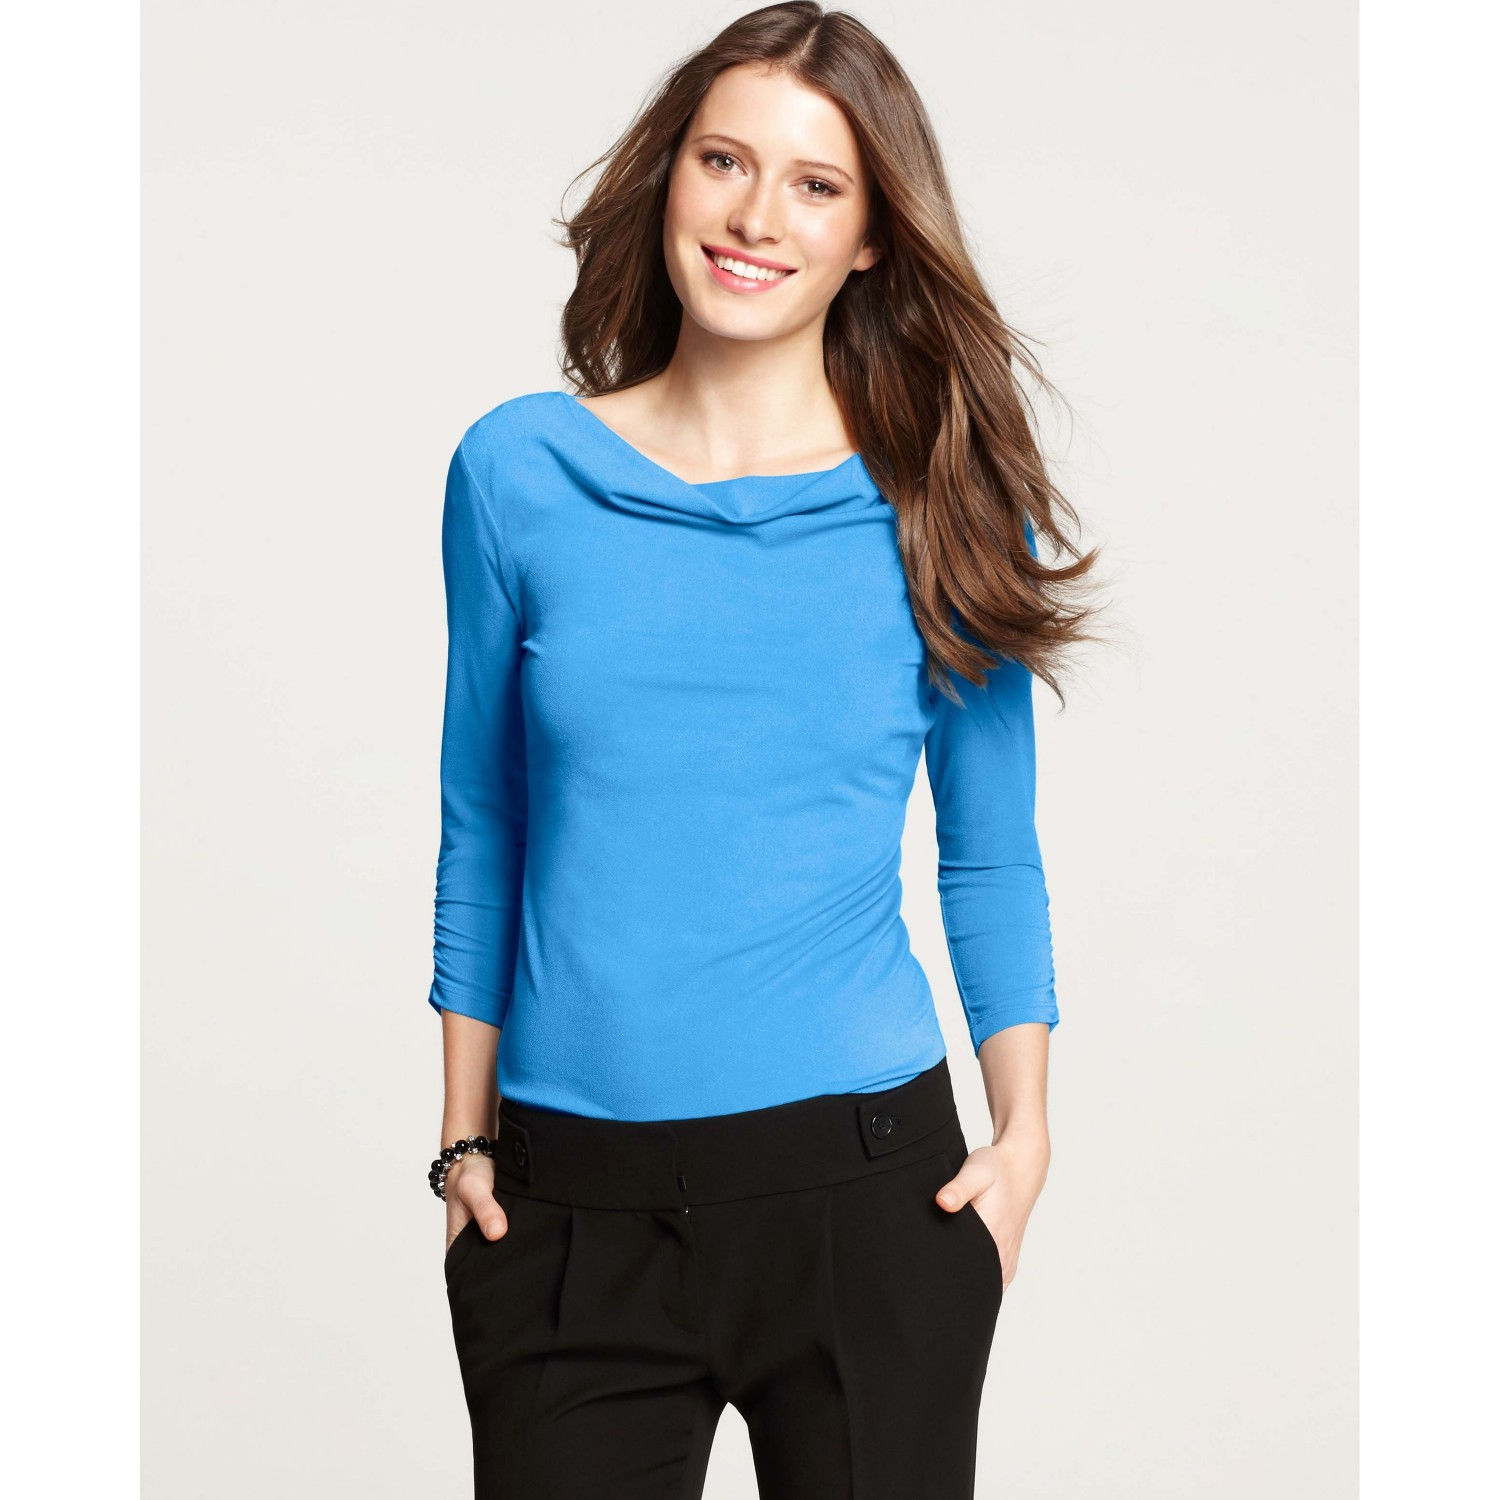 willard blouse rose ice for high neck top light drapes drape office products determined blue work collar